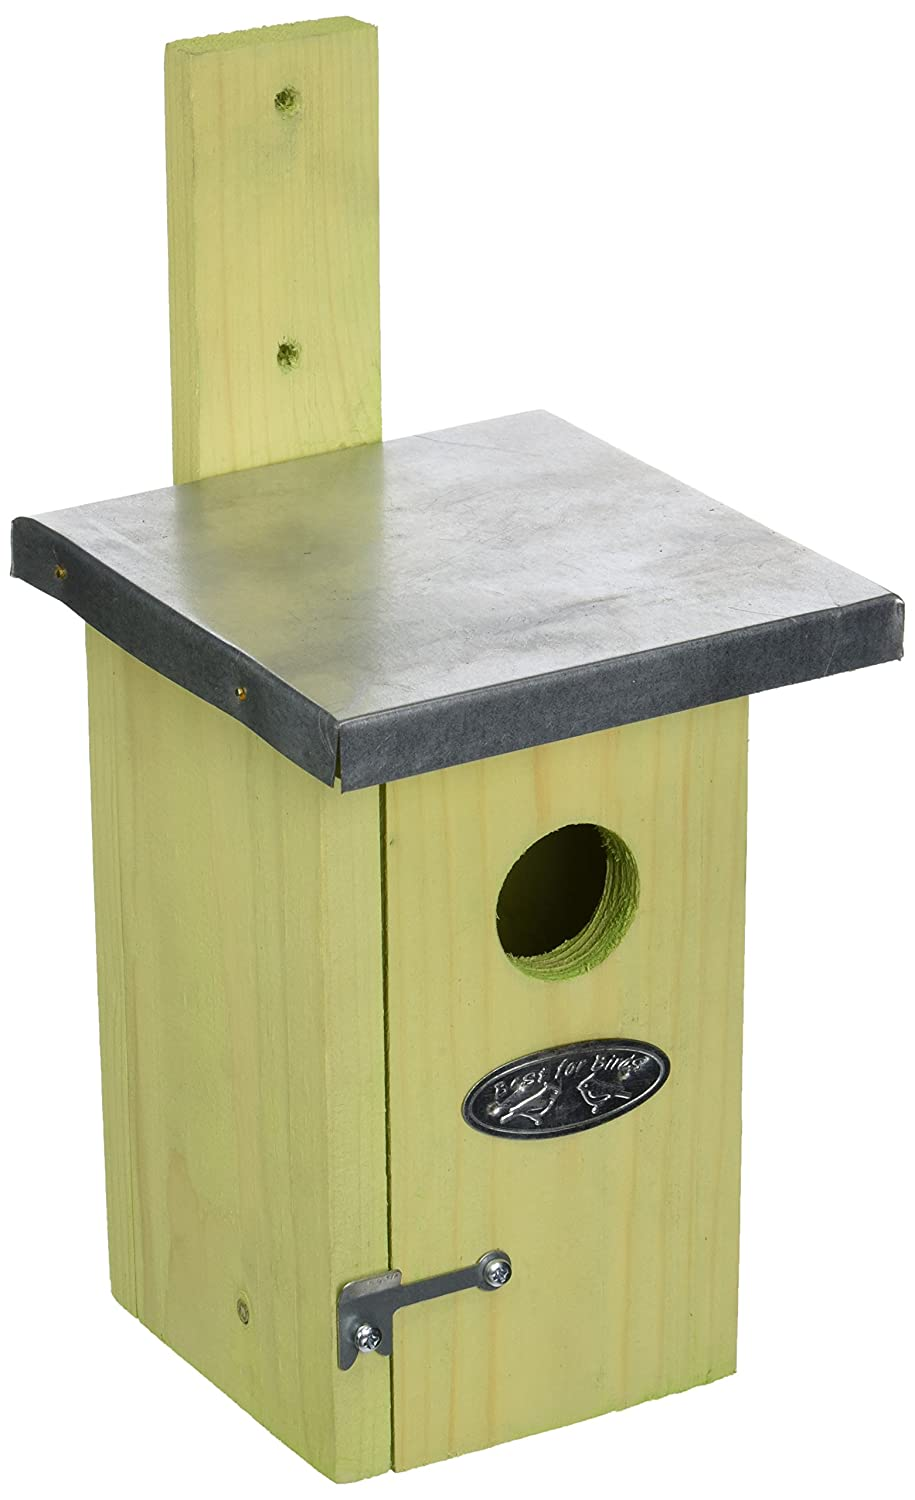 Fallen Fruits NKN Wren Nest Box